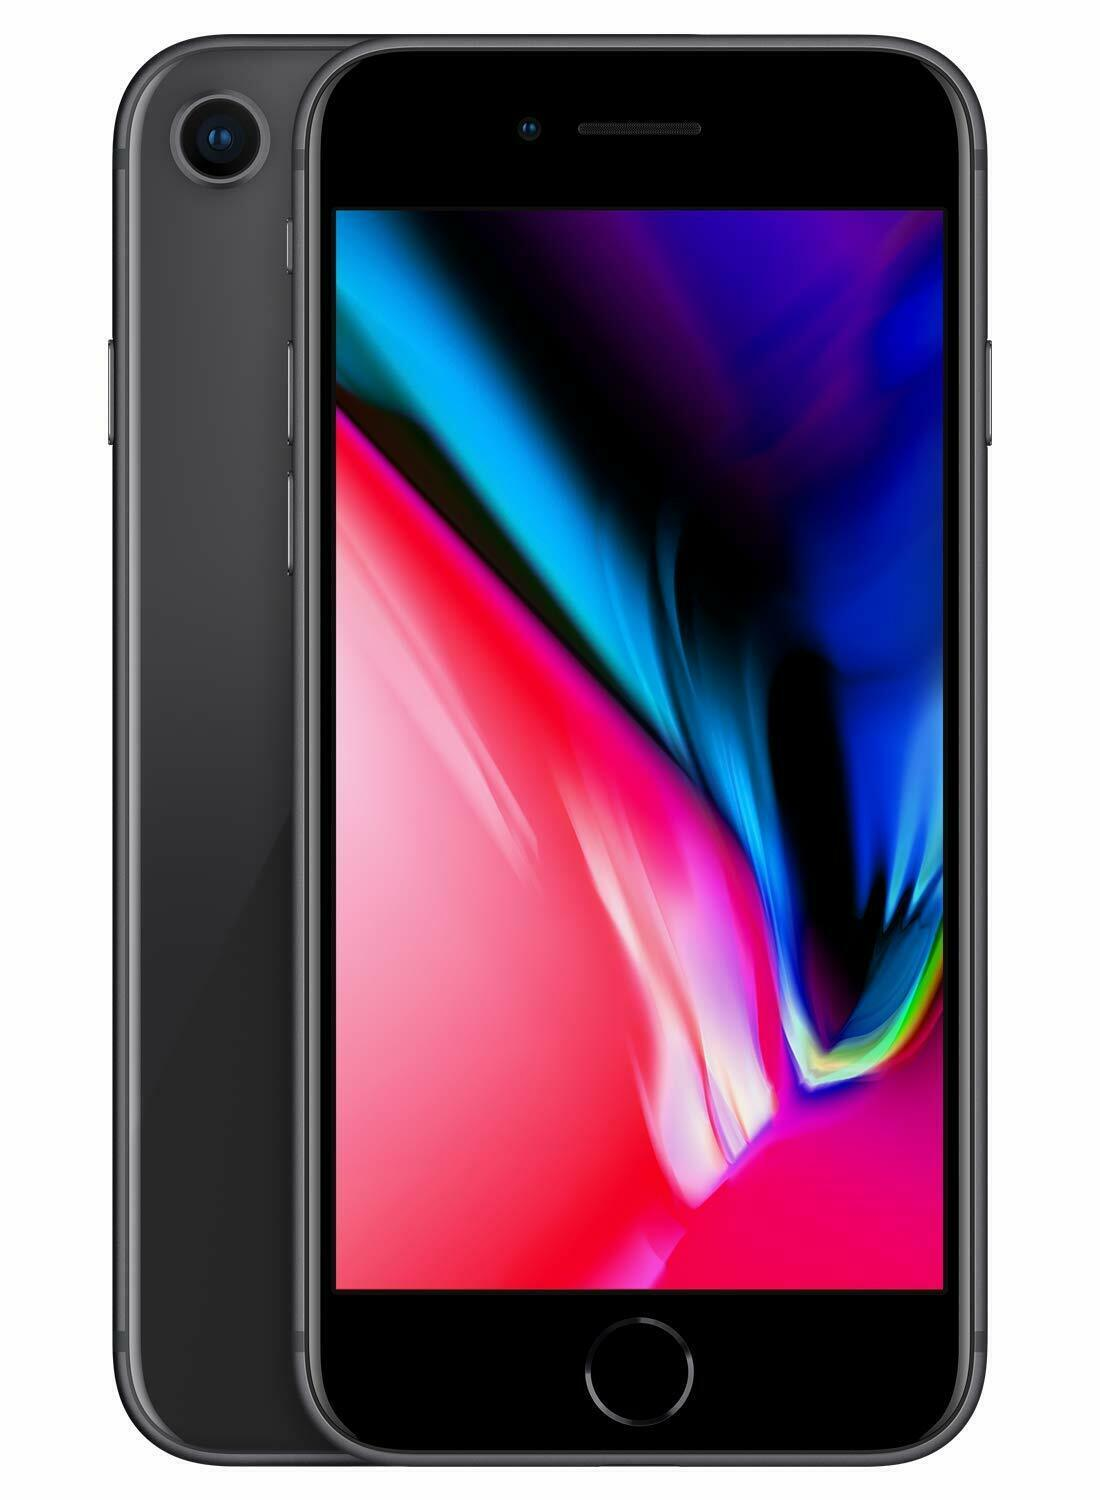 Apple iPhone 8 64GB Factory Unlocked All Carriers Refurbished - Space Grey